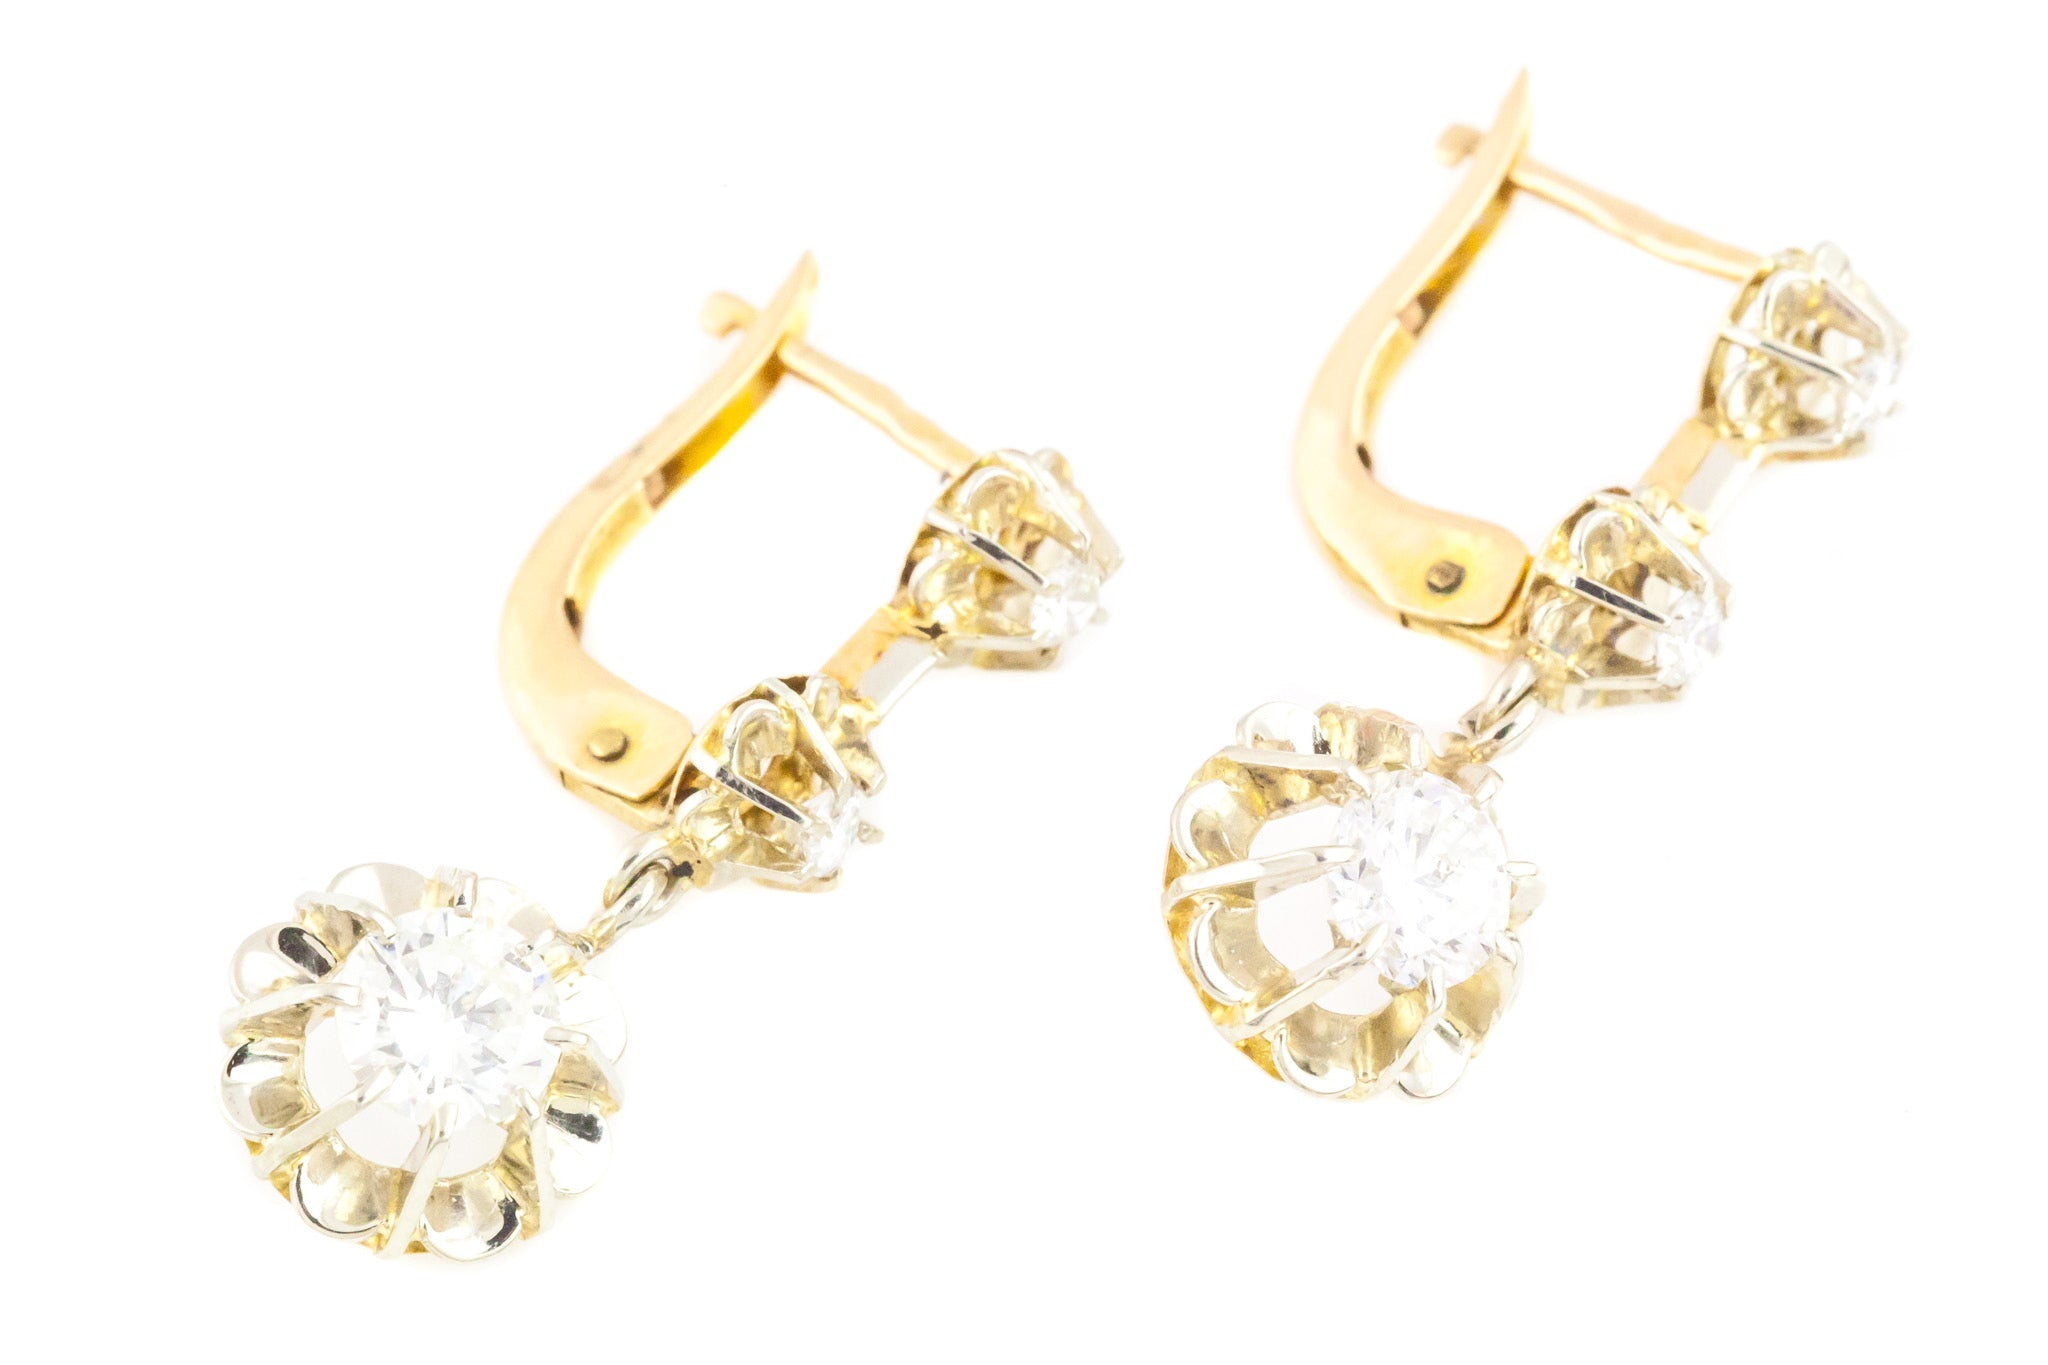 51f595a0a5e2fb 1.0ct Antique French Diamond Drop Earrings in 18ct Gold - Lever Backs –  Lillicoco